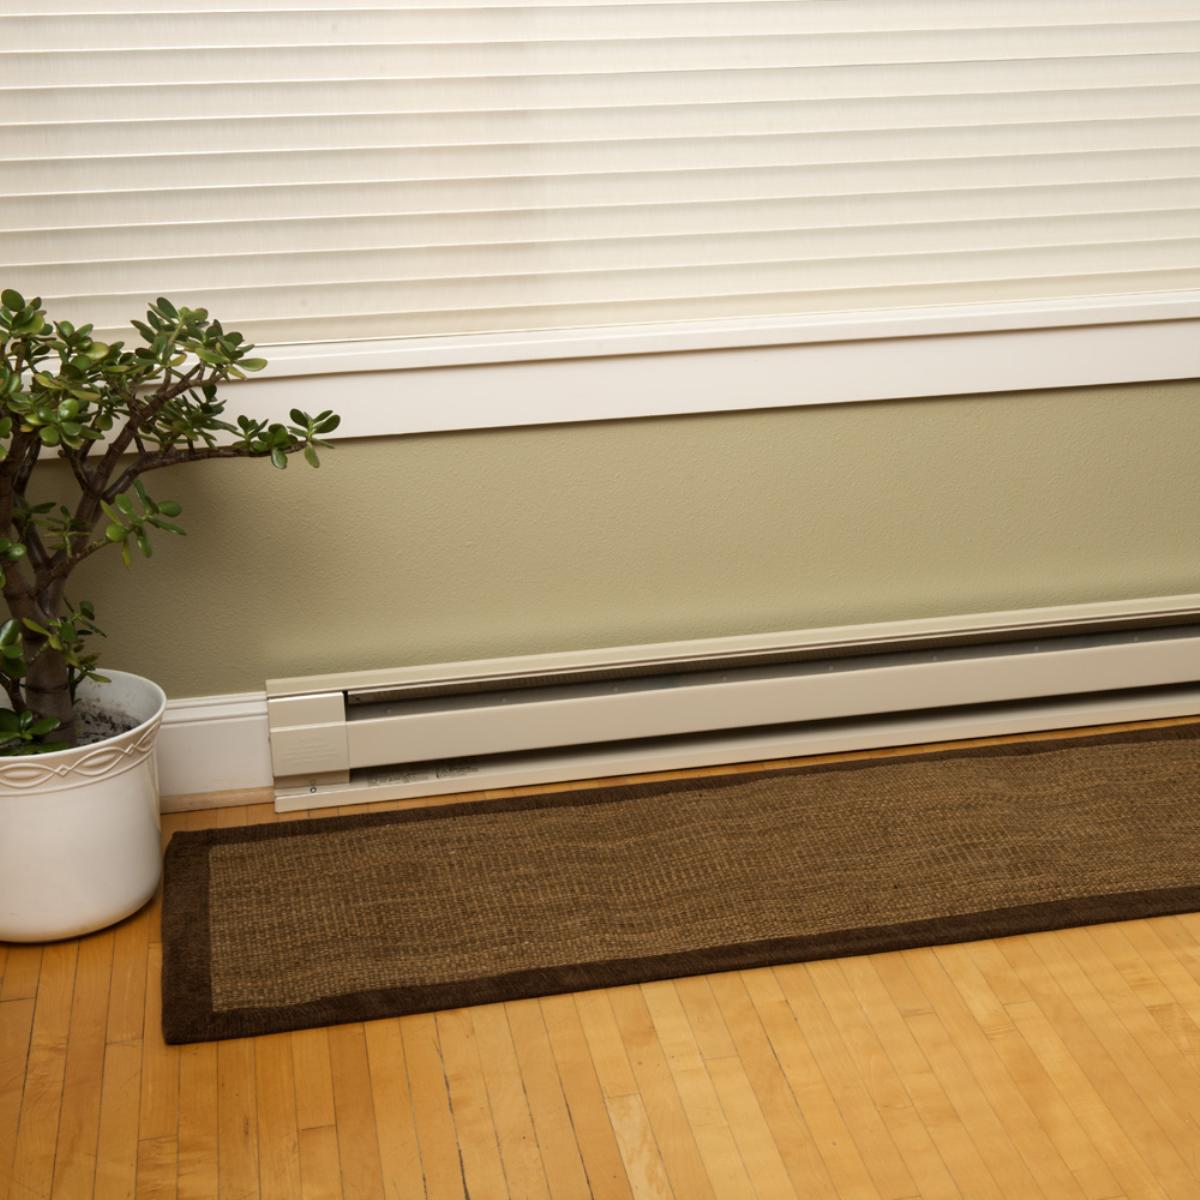 hight resolution of get a free baseboard heater installation services estimate